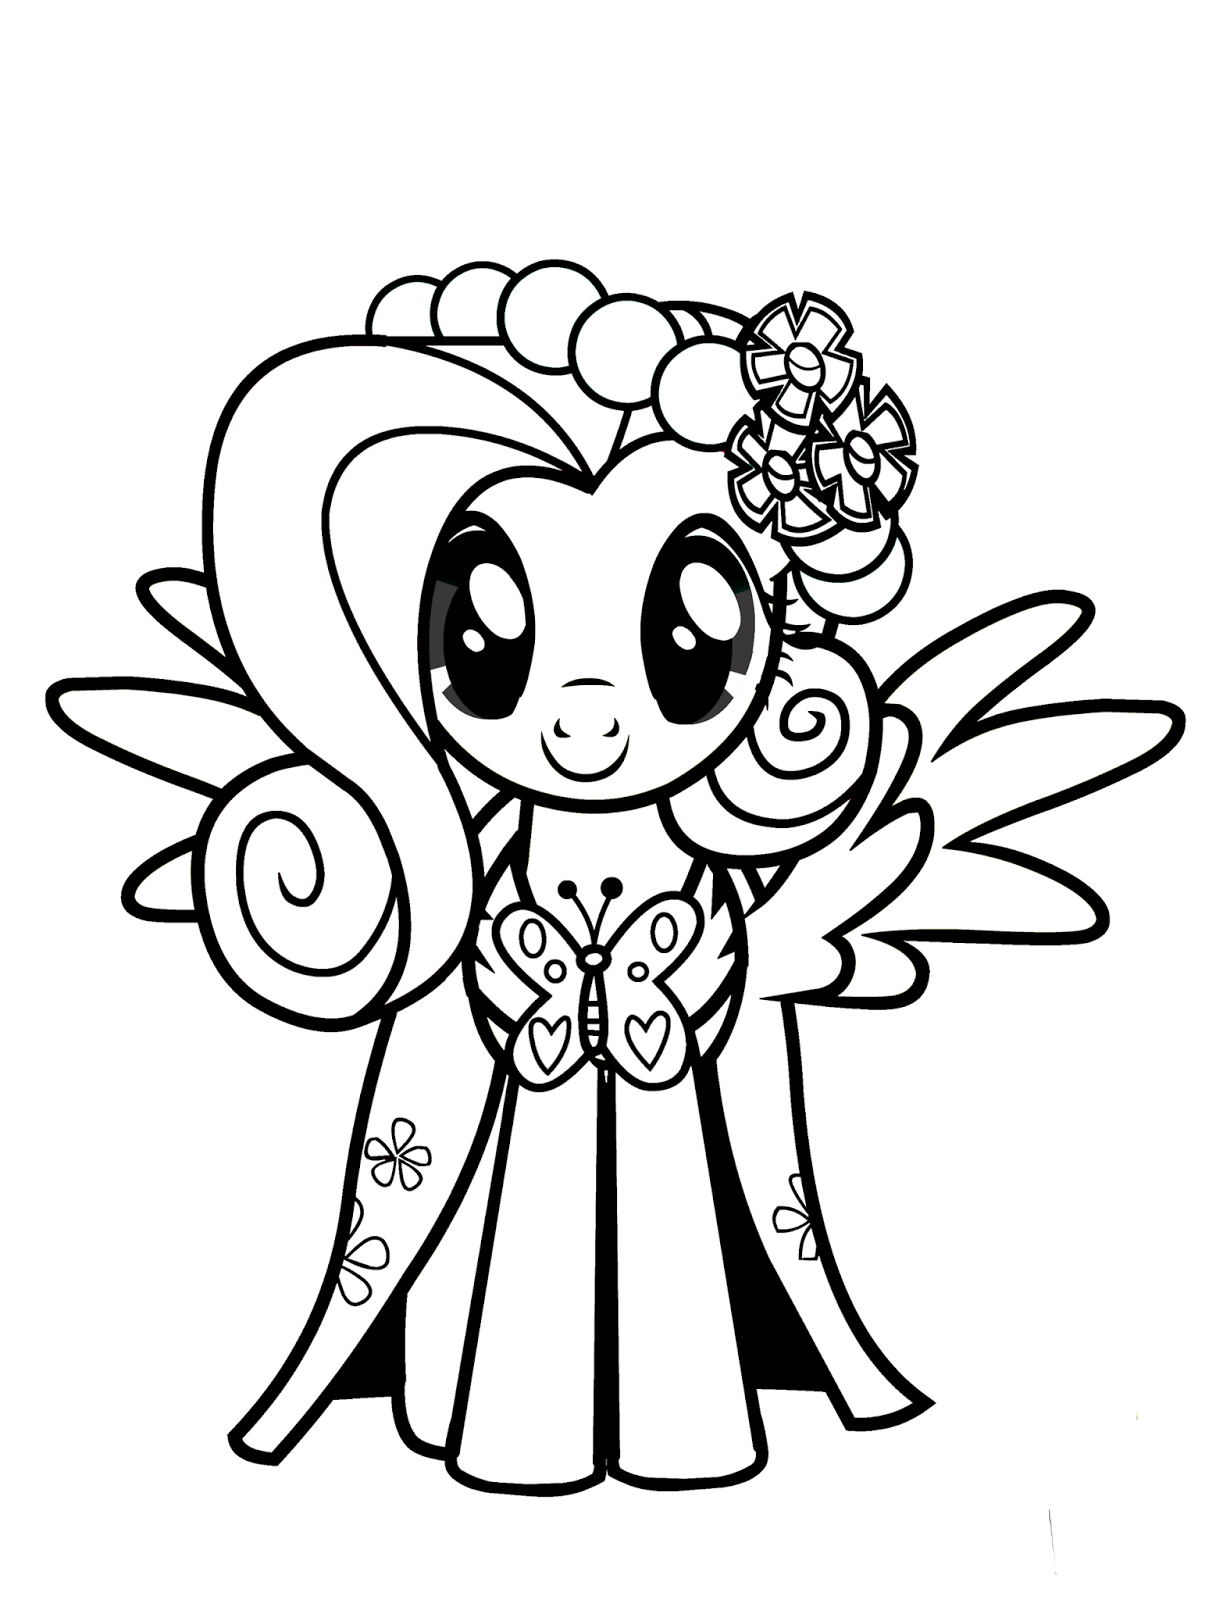 ponies colouring pages free printable my little pony coloring pages for kids ponies colouring pages